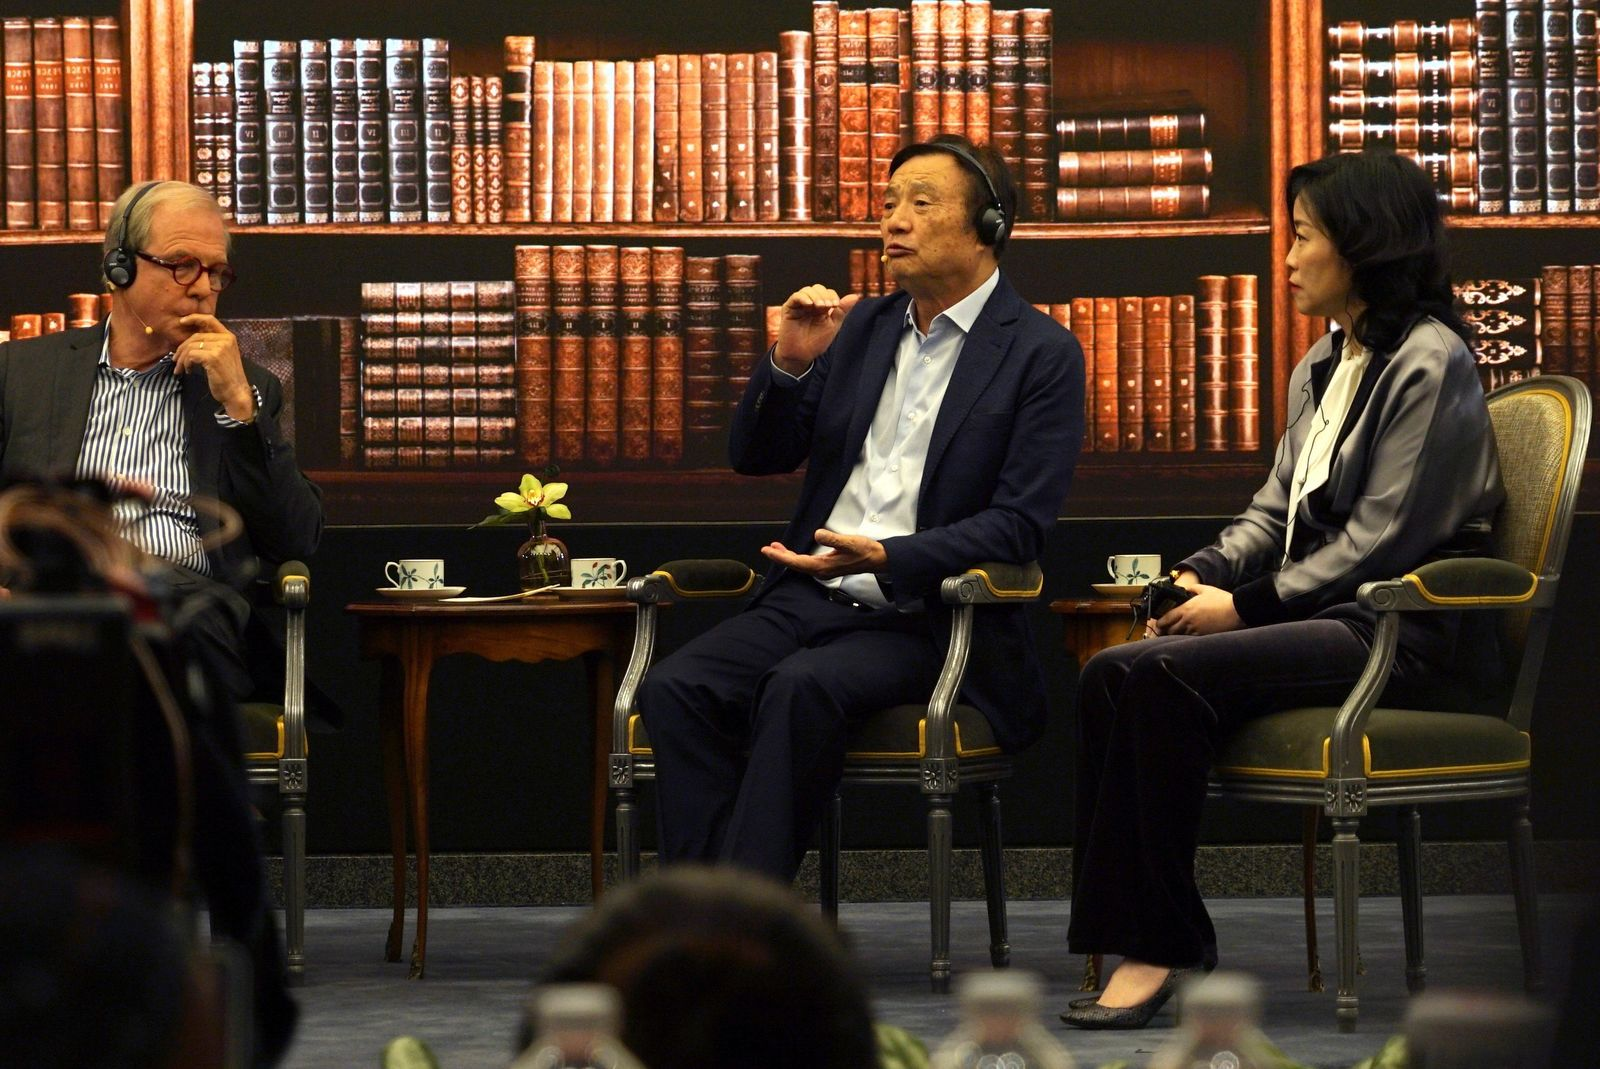 Huawei founder Ren Zhengfei, center, speaks at a roundtable at the telecom giant's headquarters in Shenzhen in southern China on Monday, June 17, 2019. . (AP Photo/Dake Kang)